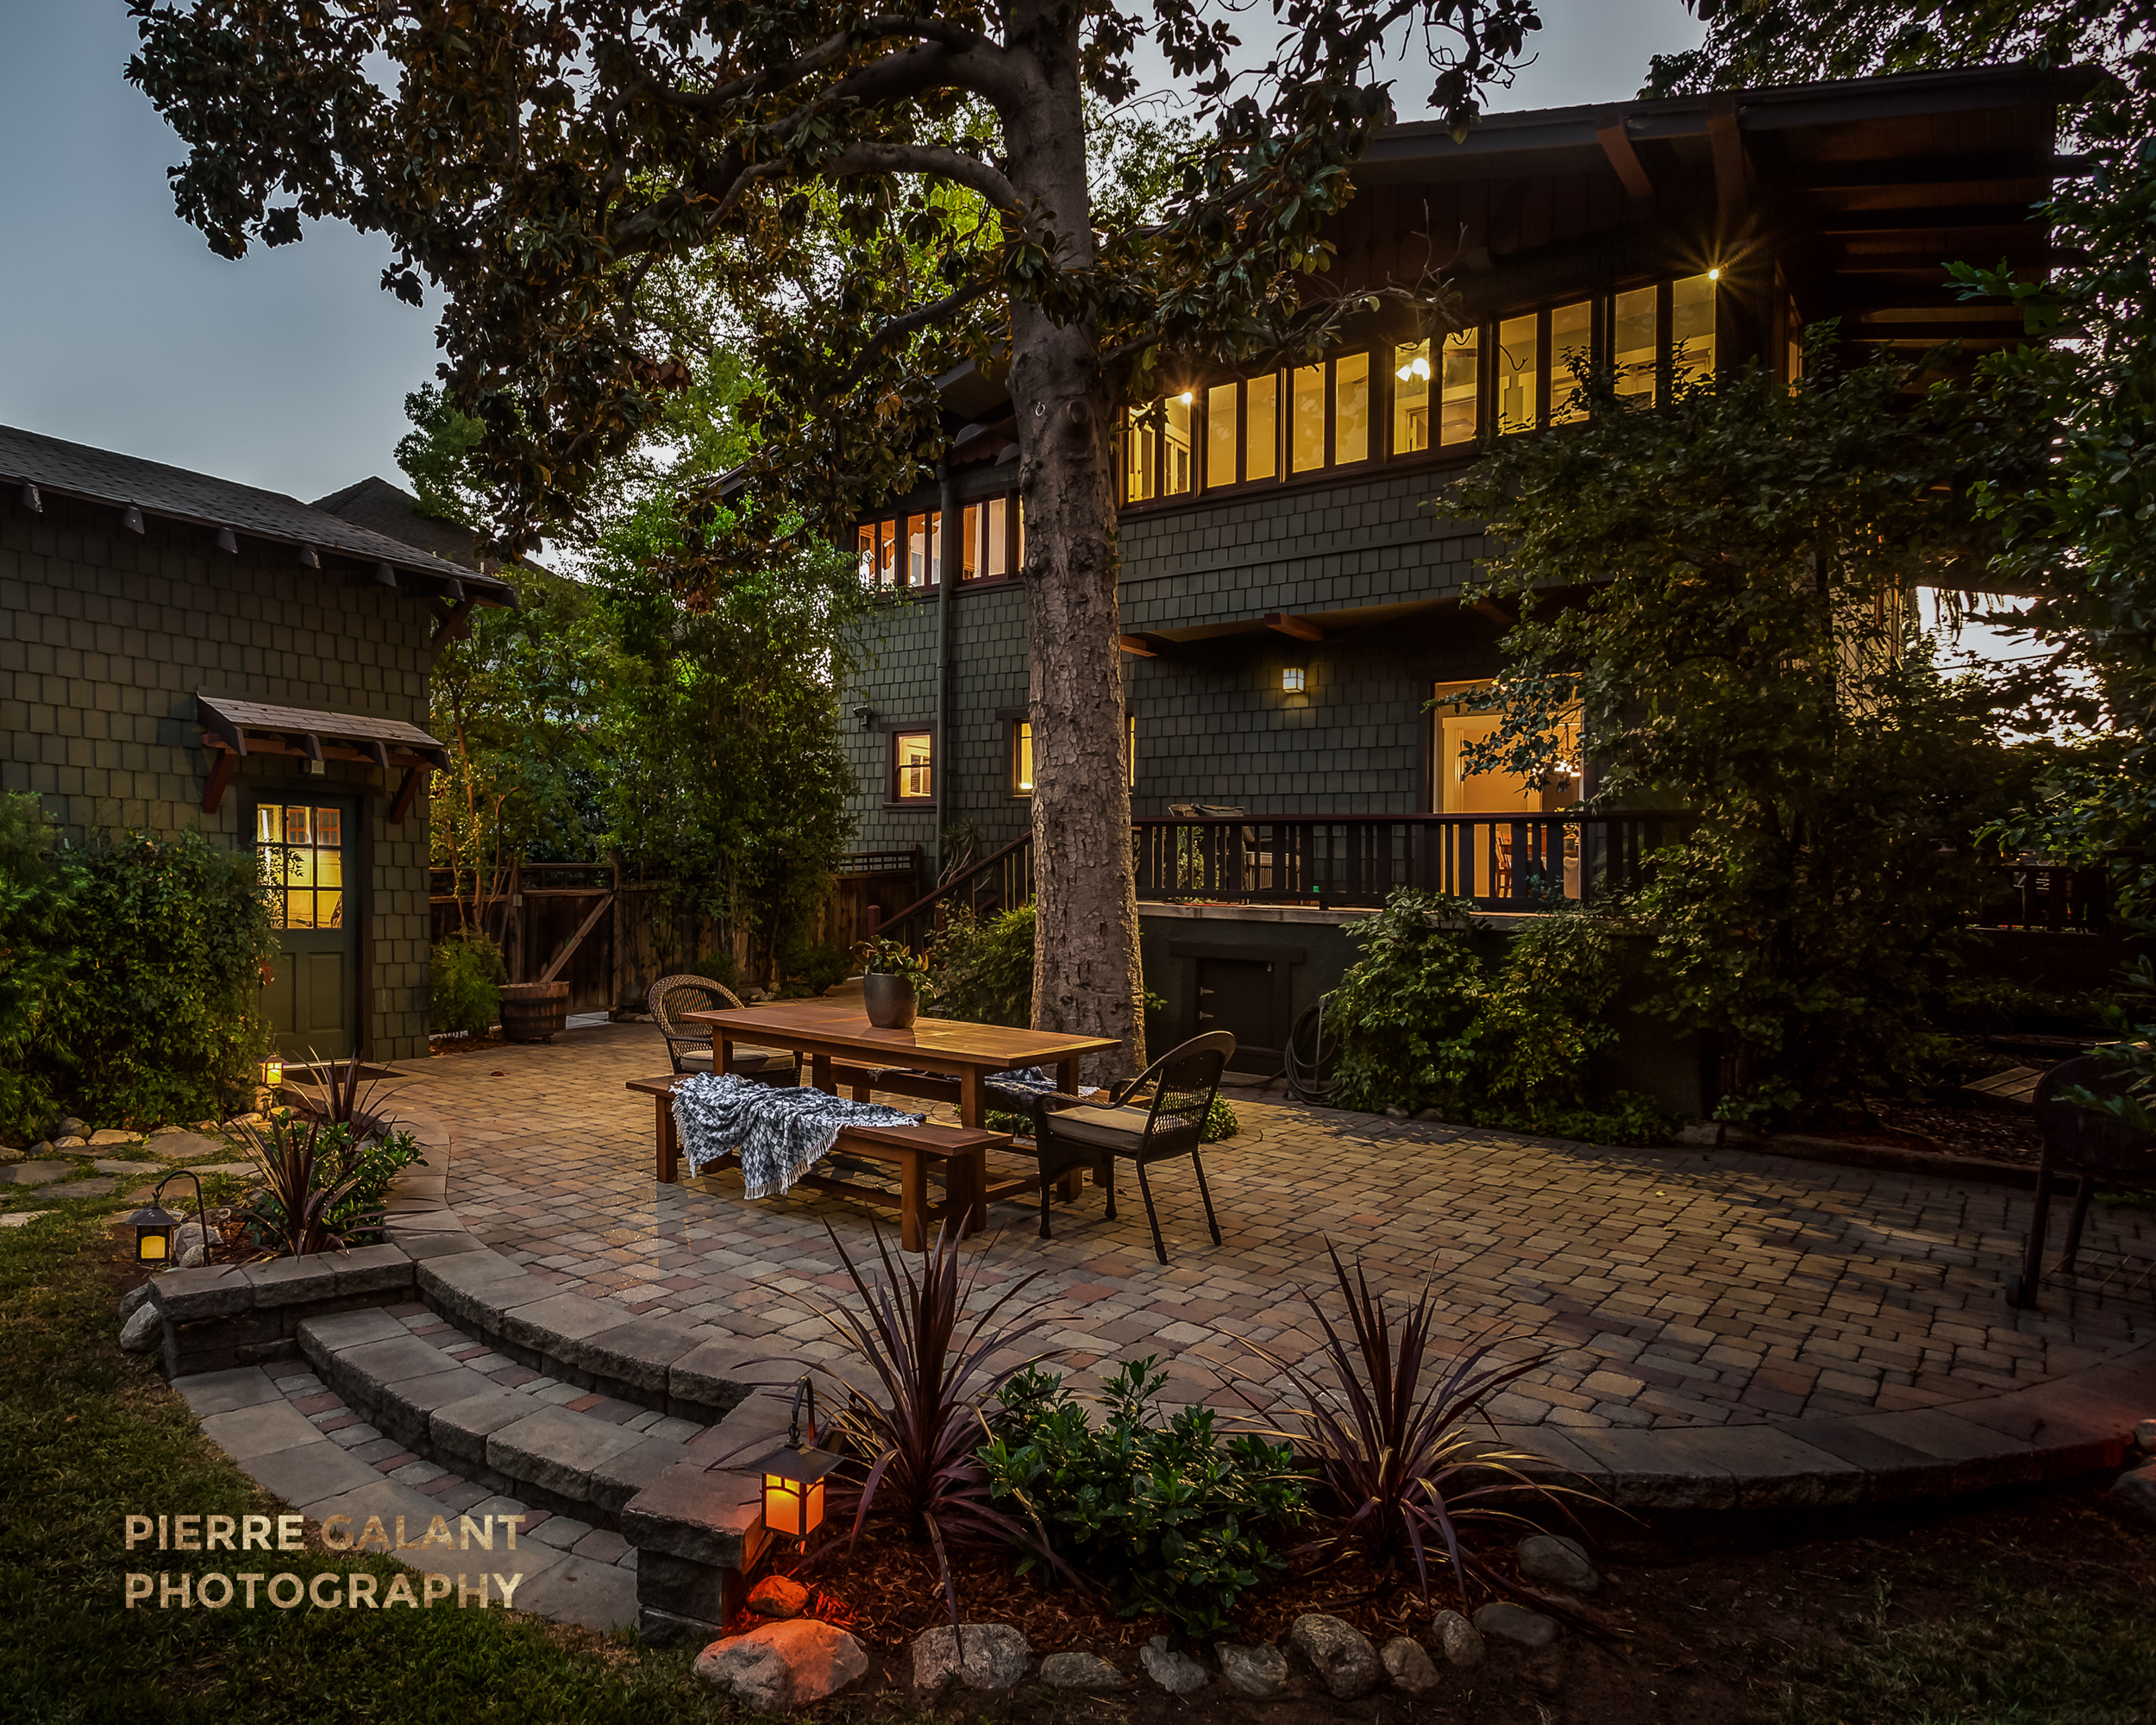 """To finish on a high note, this home was published in Curbed LA, and one of the commenters said: """"That backyard. I'm stunned. When I die, just throw my ashes into that back yard."""""""